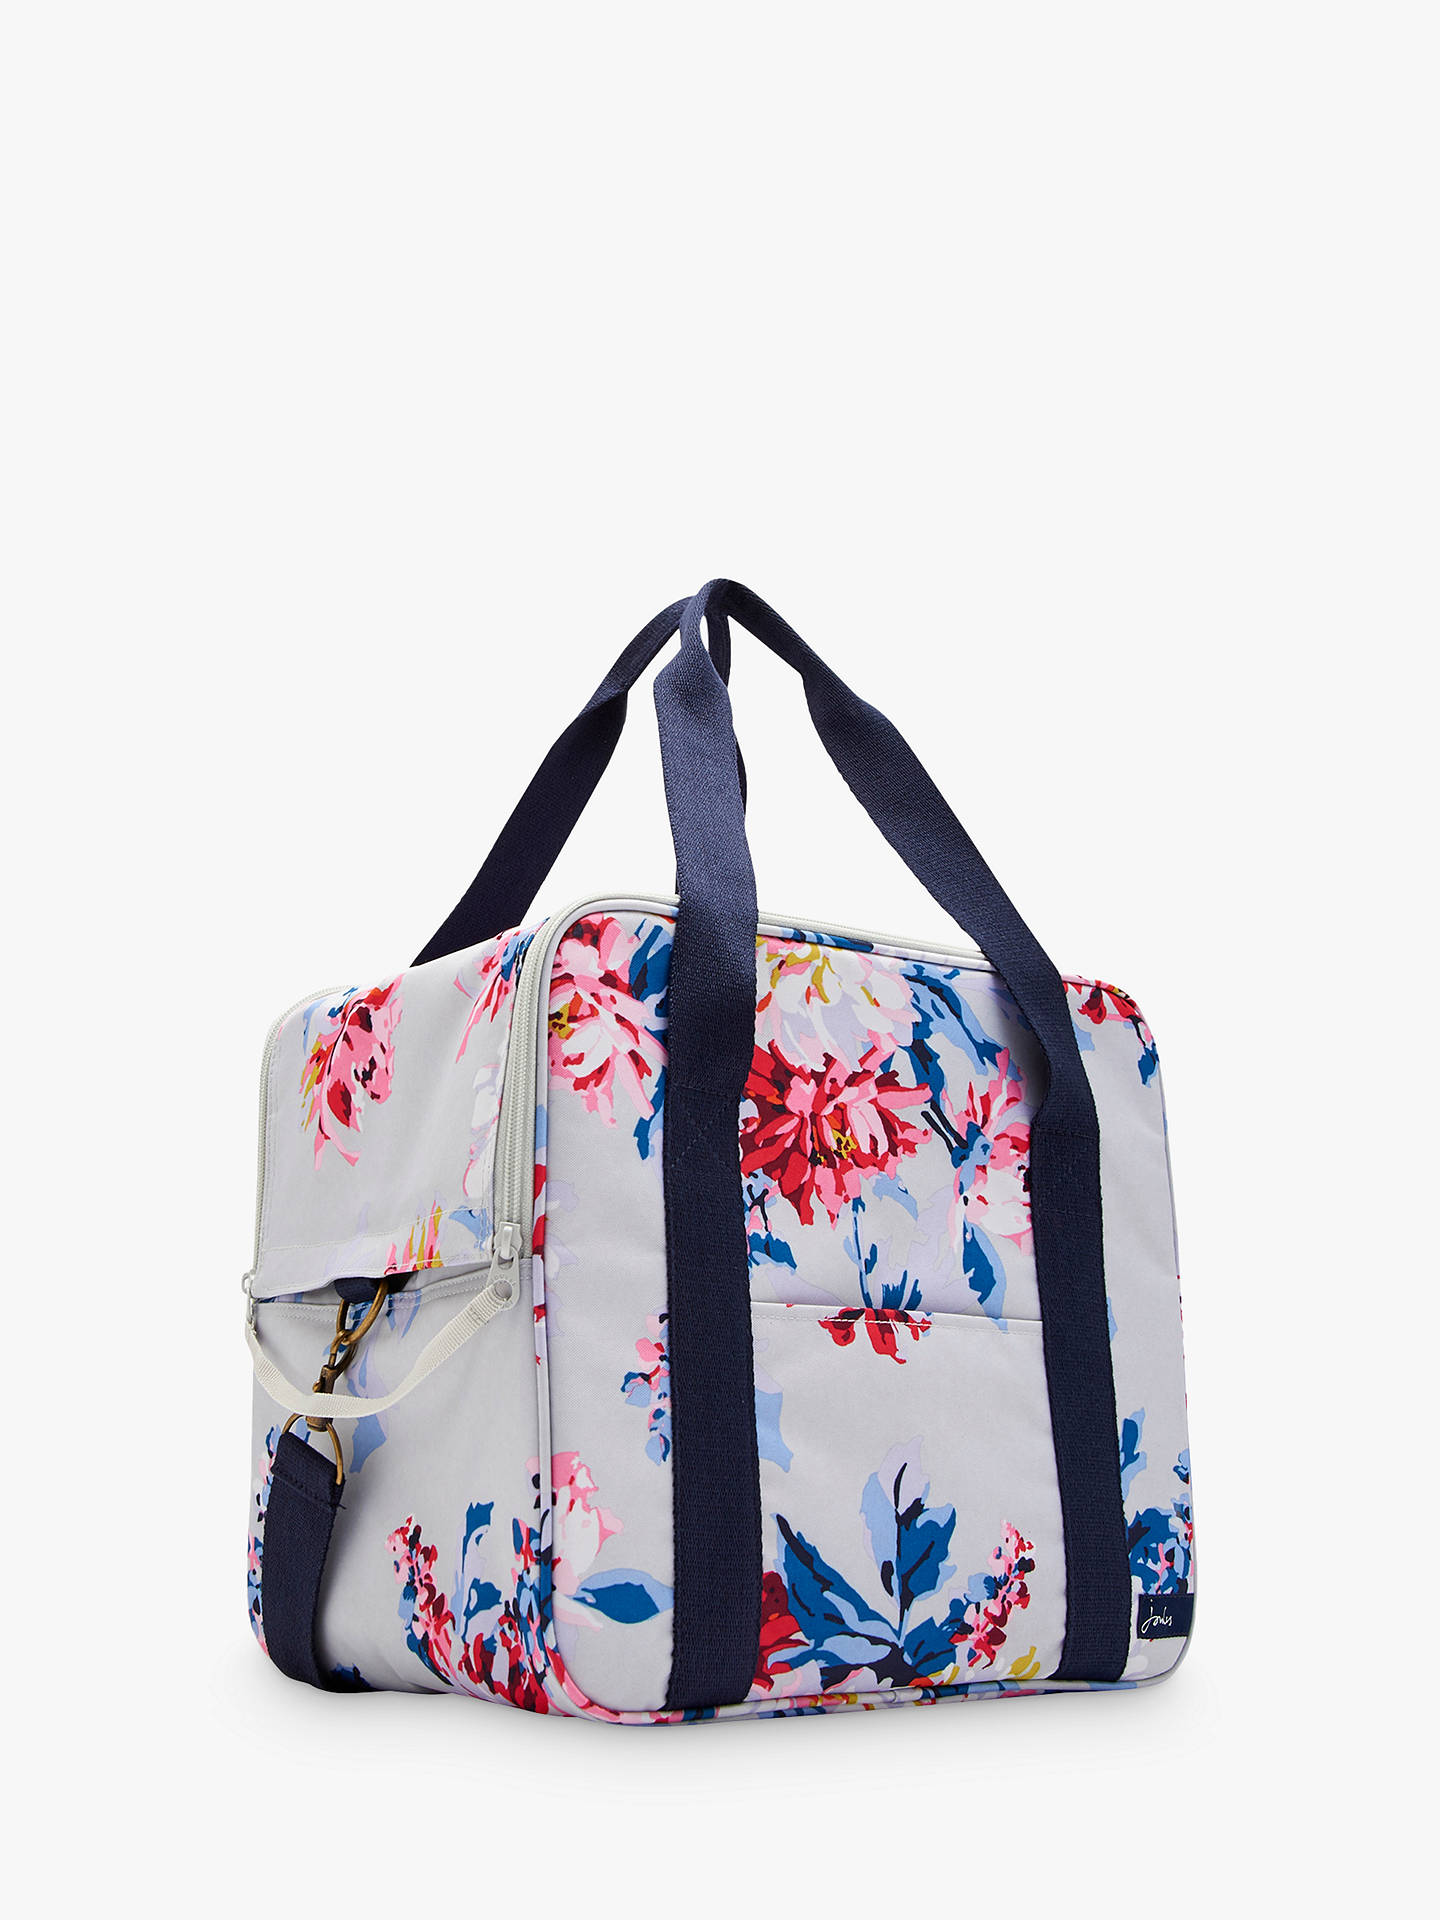 bef80dad40db ... Buy Joules Whitstable Floral Picnic Cooler Bag Online at johnlewis.com  ...